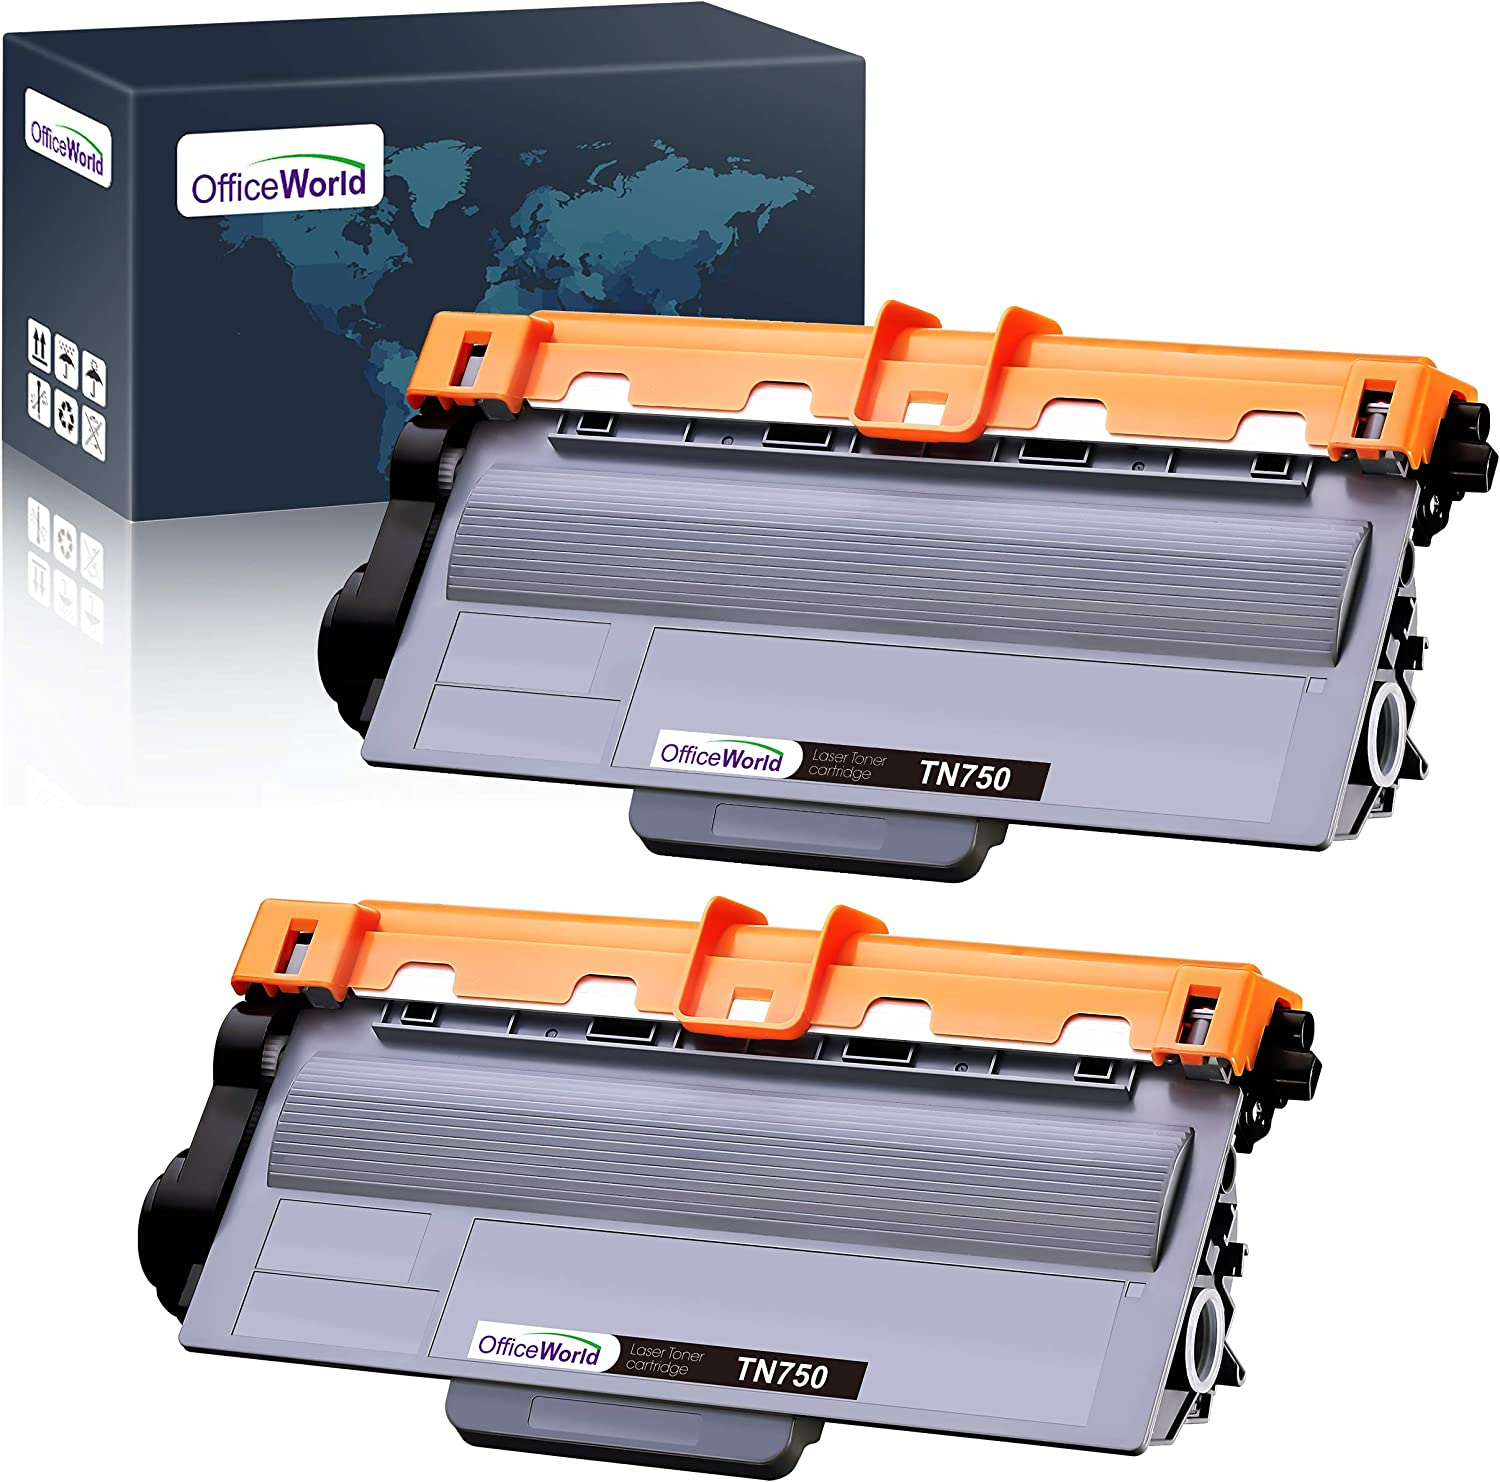 OfficeWorld Compatible Toner Cartridge Replacement for Brother TN750 TN-750 TN720 (Black, 2-Pack), Compatible with Brother HL-5470DW HL-5450DN HL-6180DW MFC-8710DW MFC-8910DW MFC-8950DW